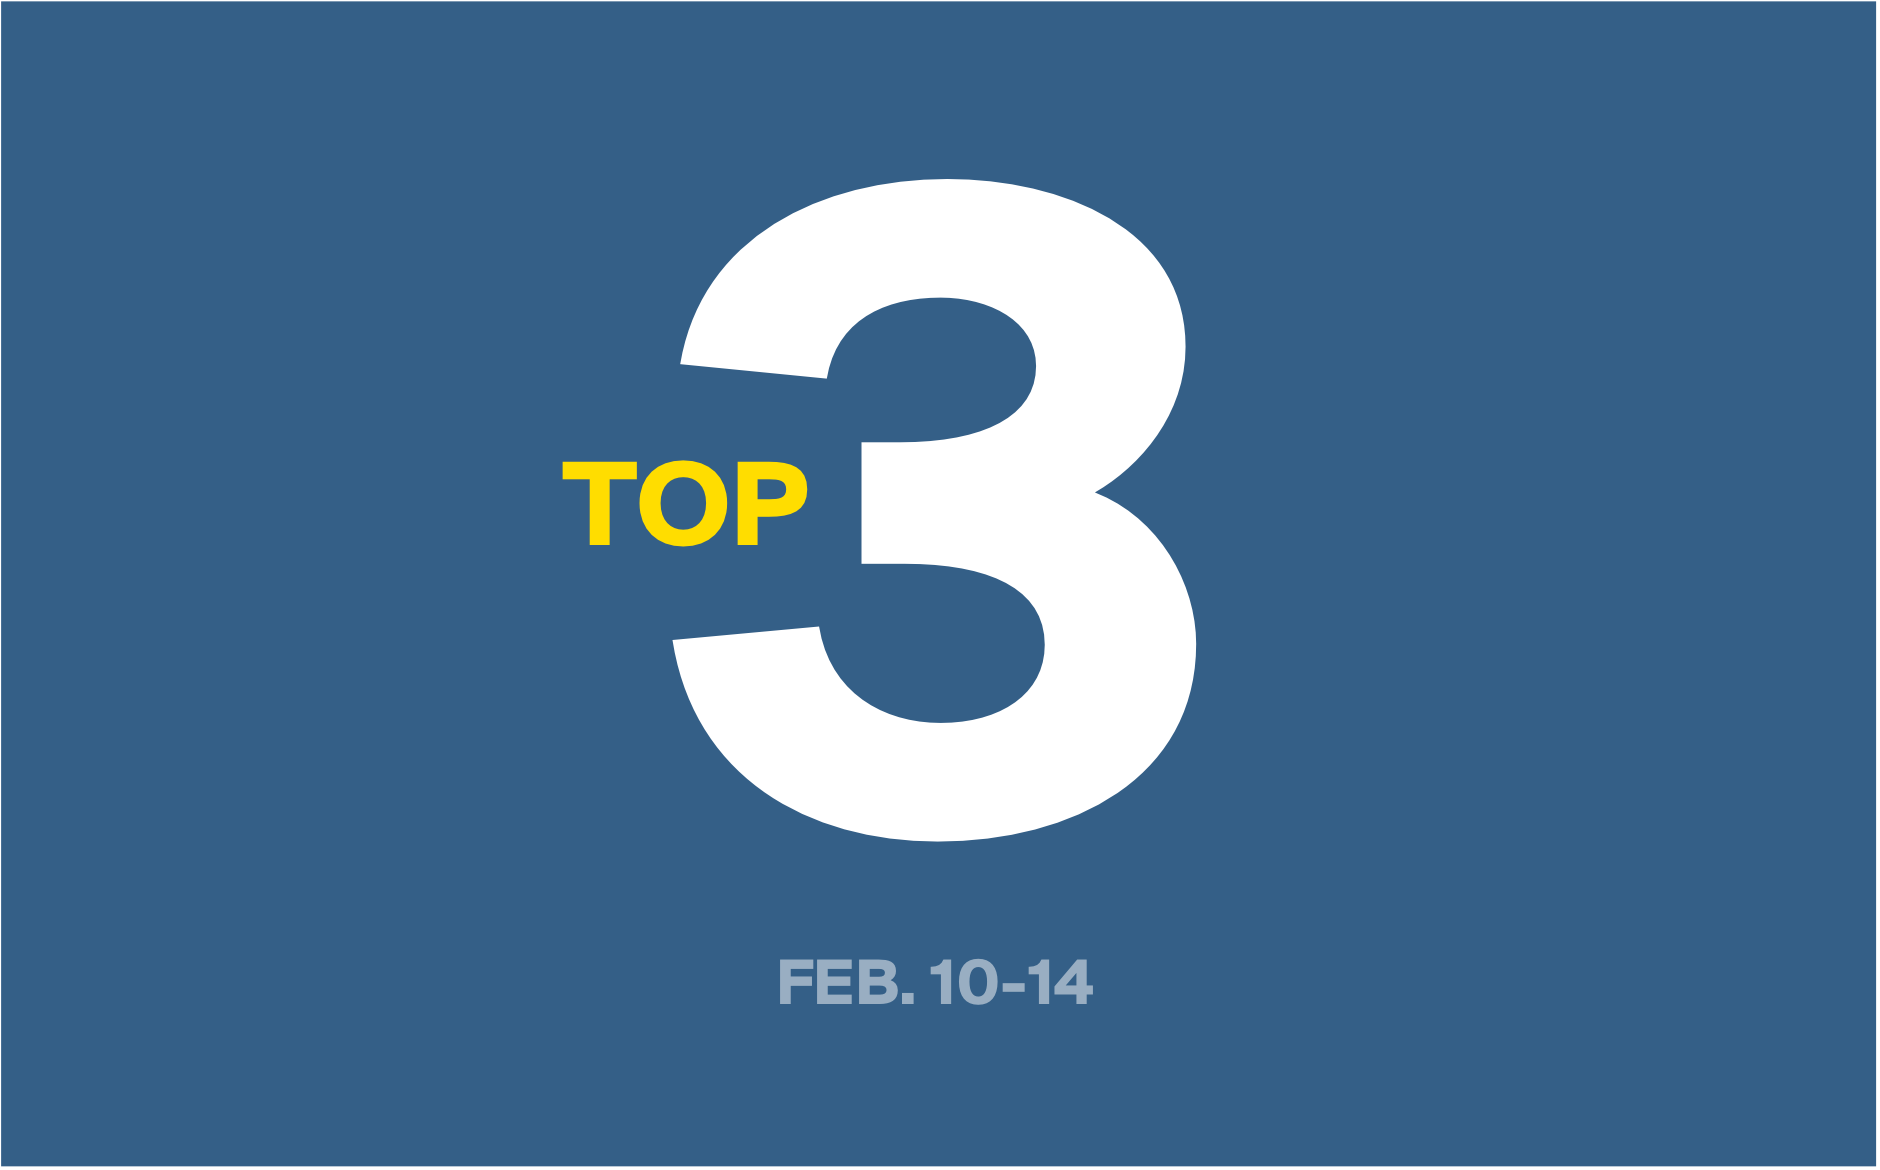 The Top 3 Private Placements Announced This Week (Feb. 10-14)